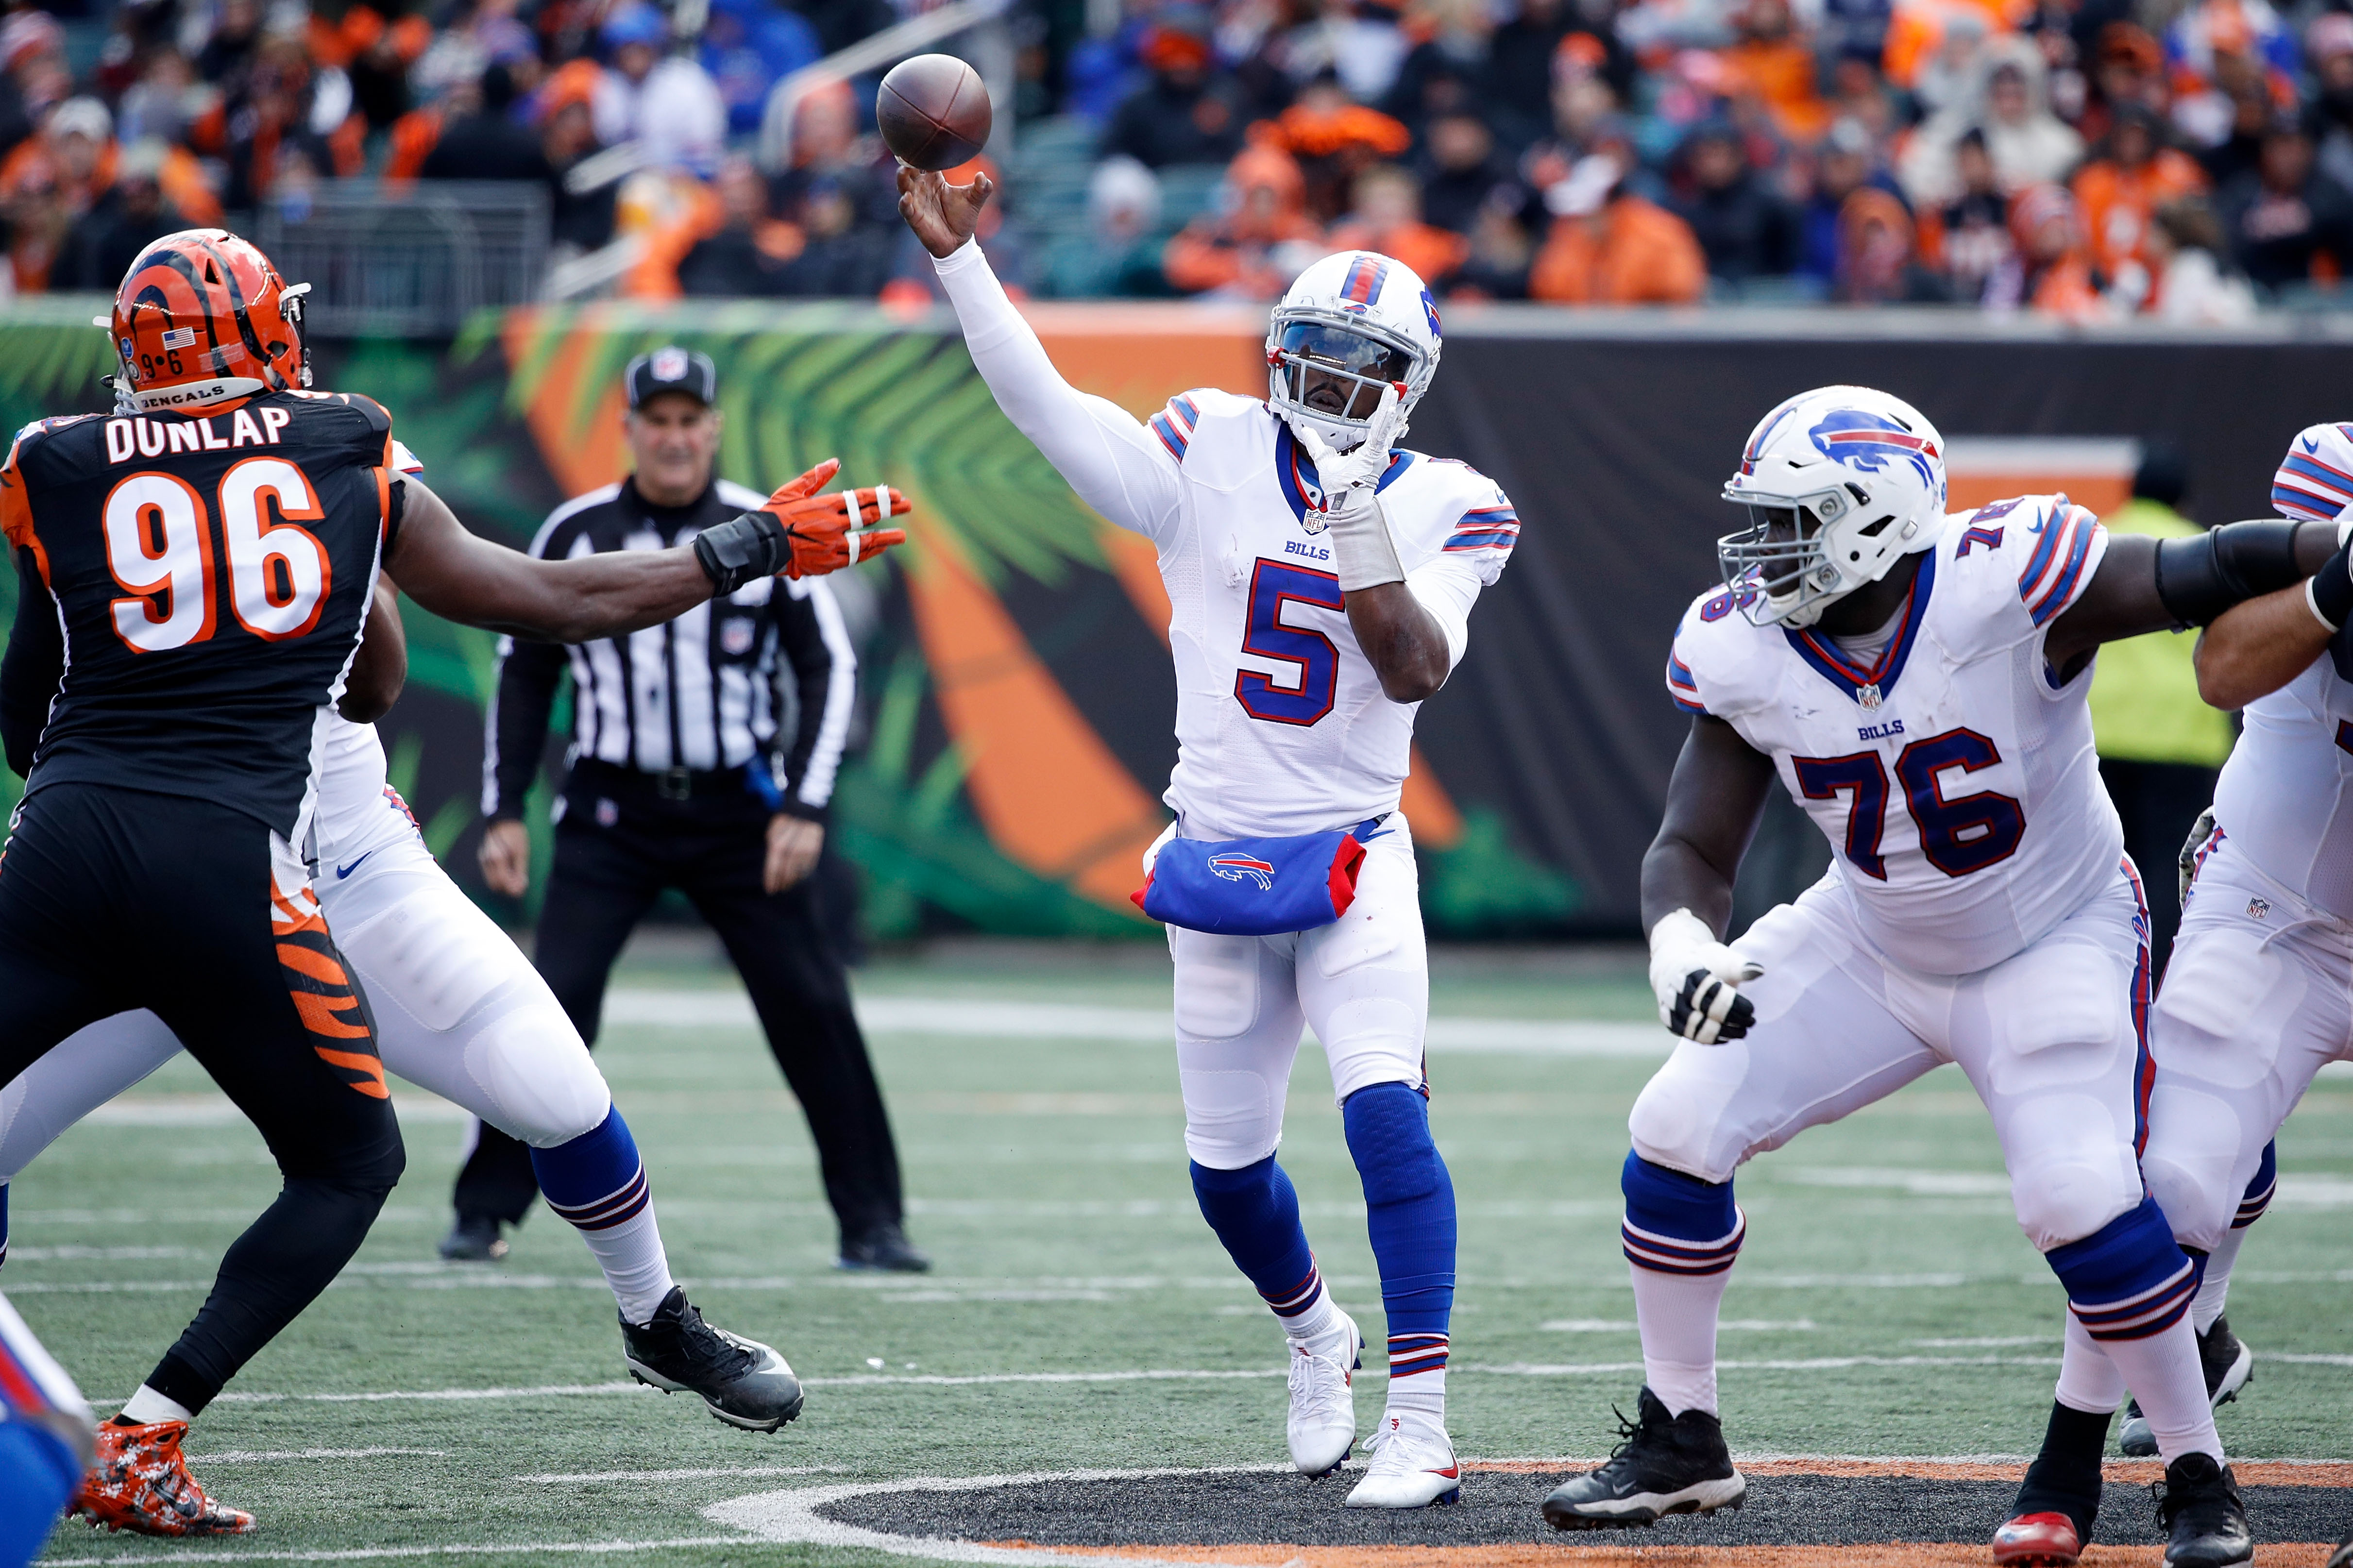 Tyrod Taylor throws a pass during the second quarter. (Getty Images)